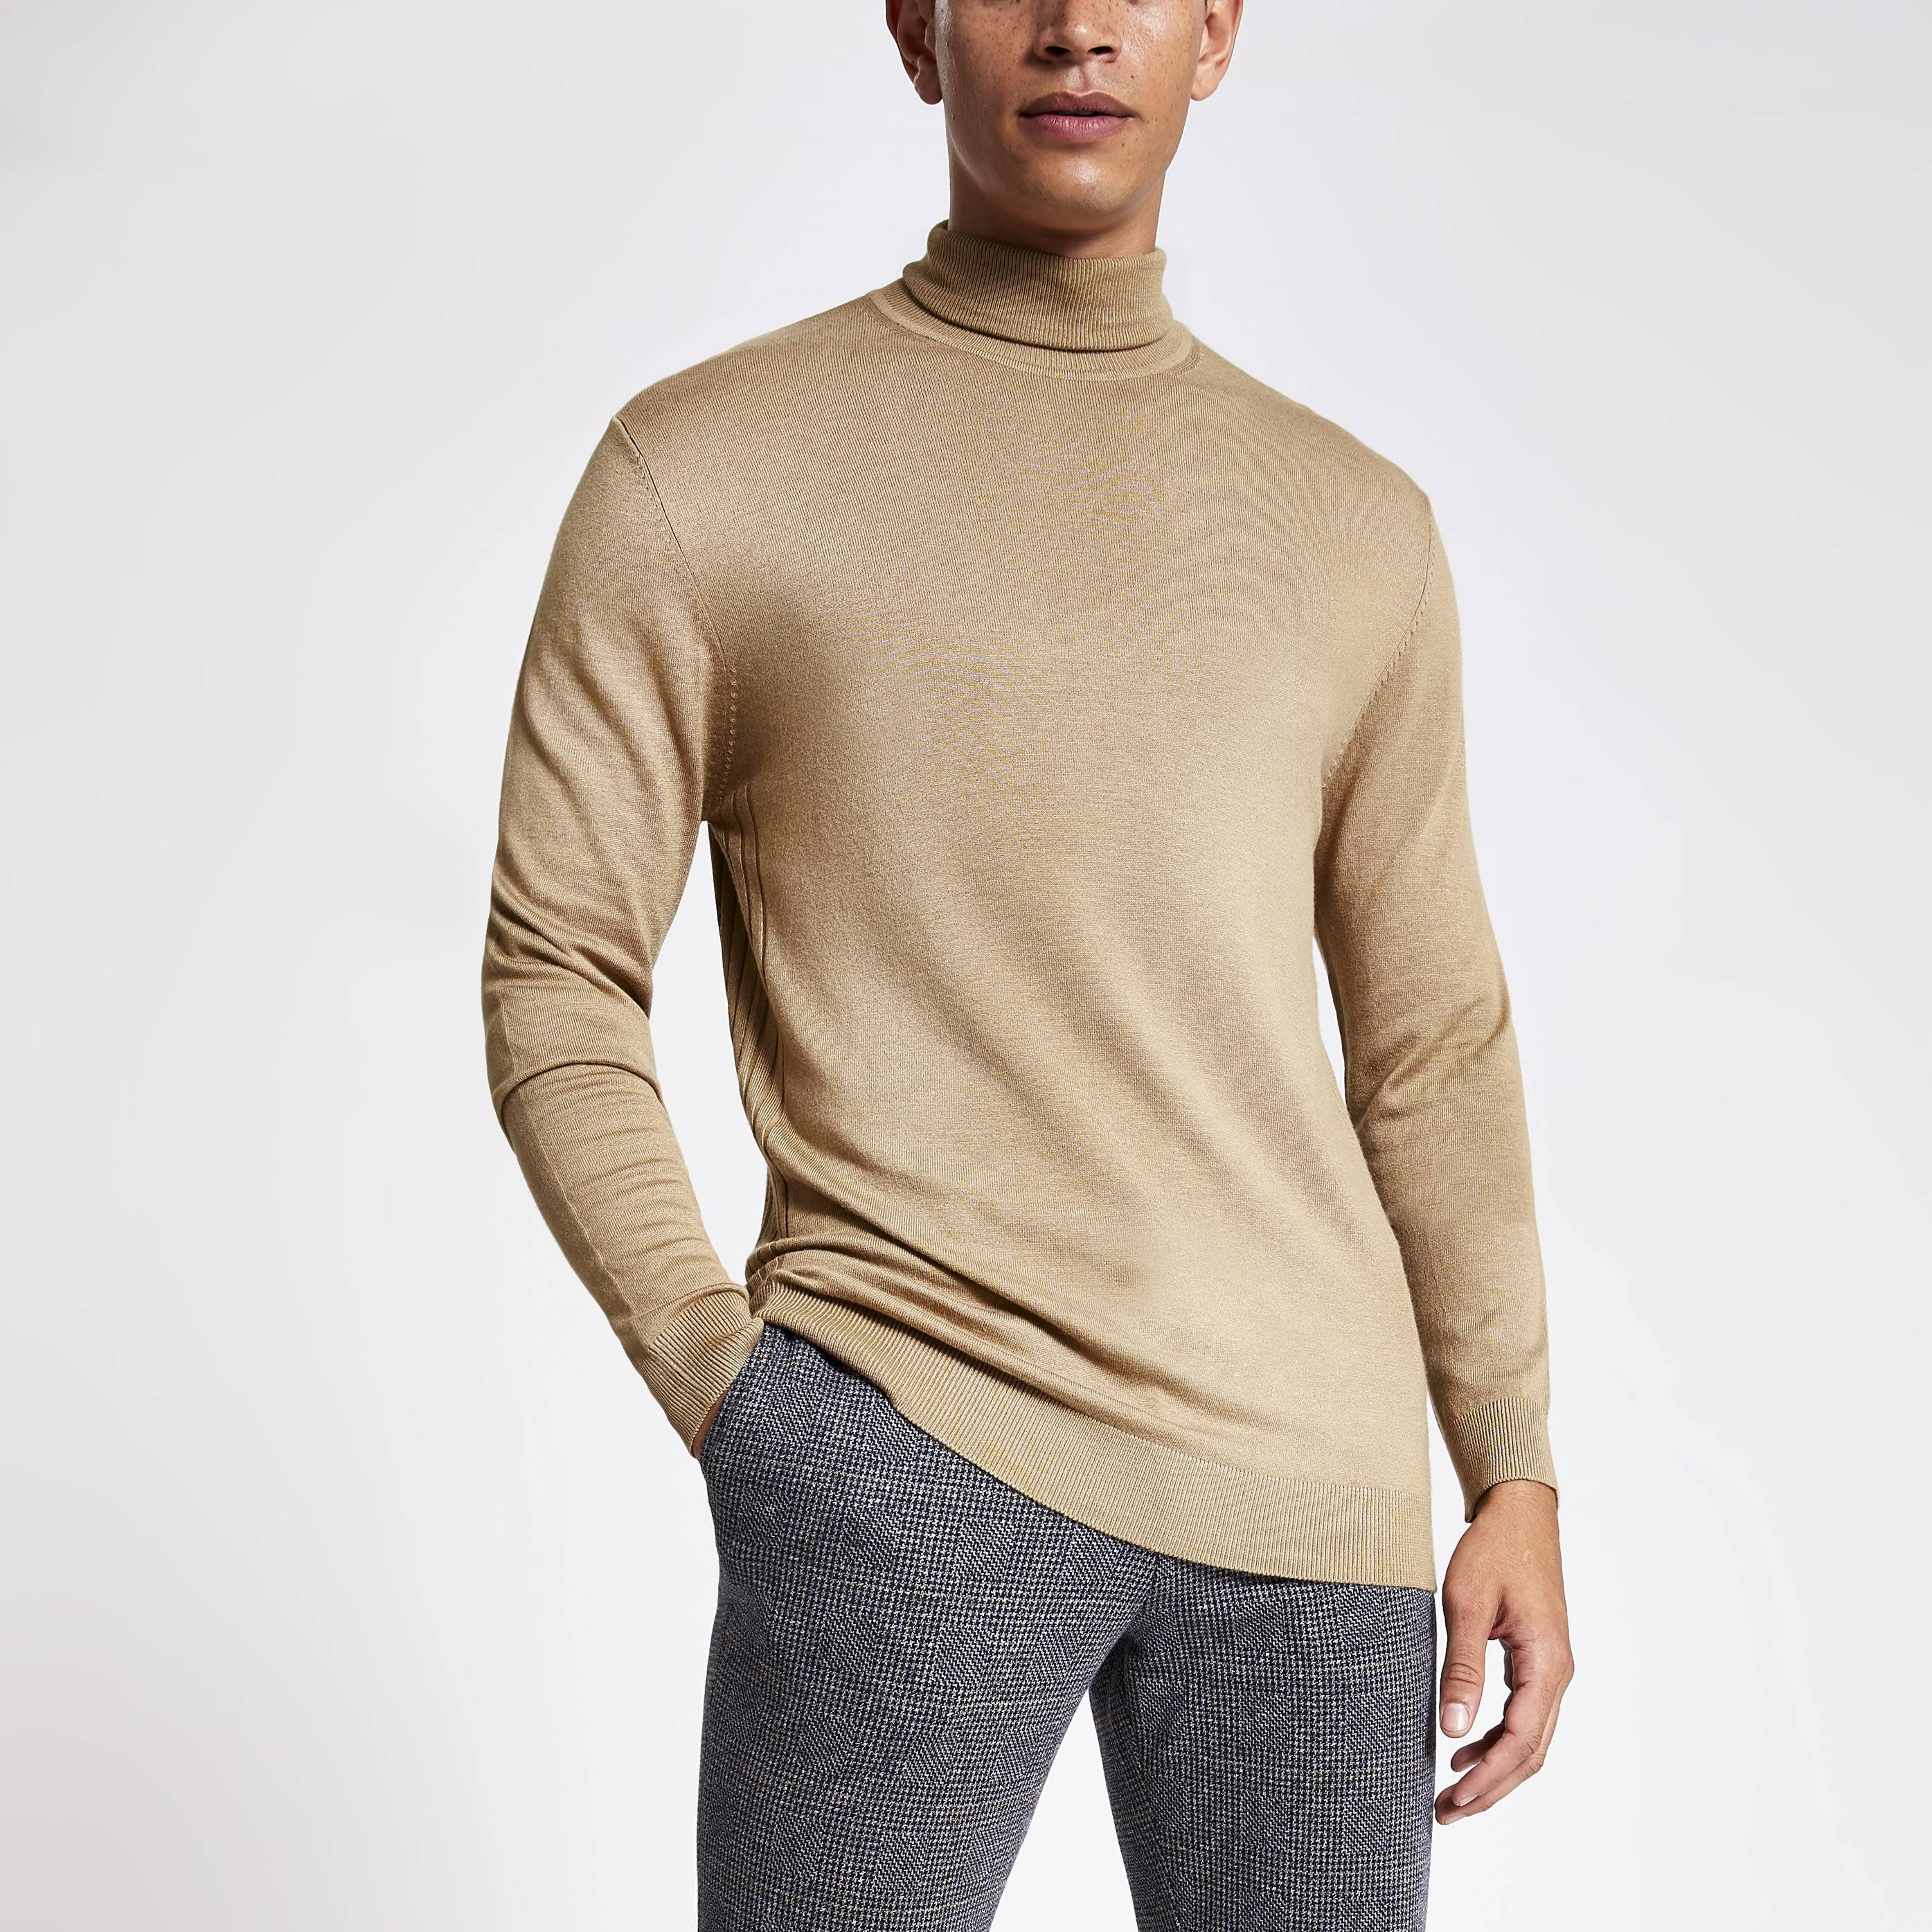 river island Mens Brown slim fit roll neck knitted jumper (XXS)